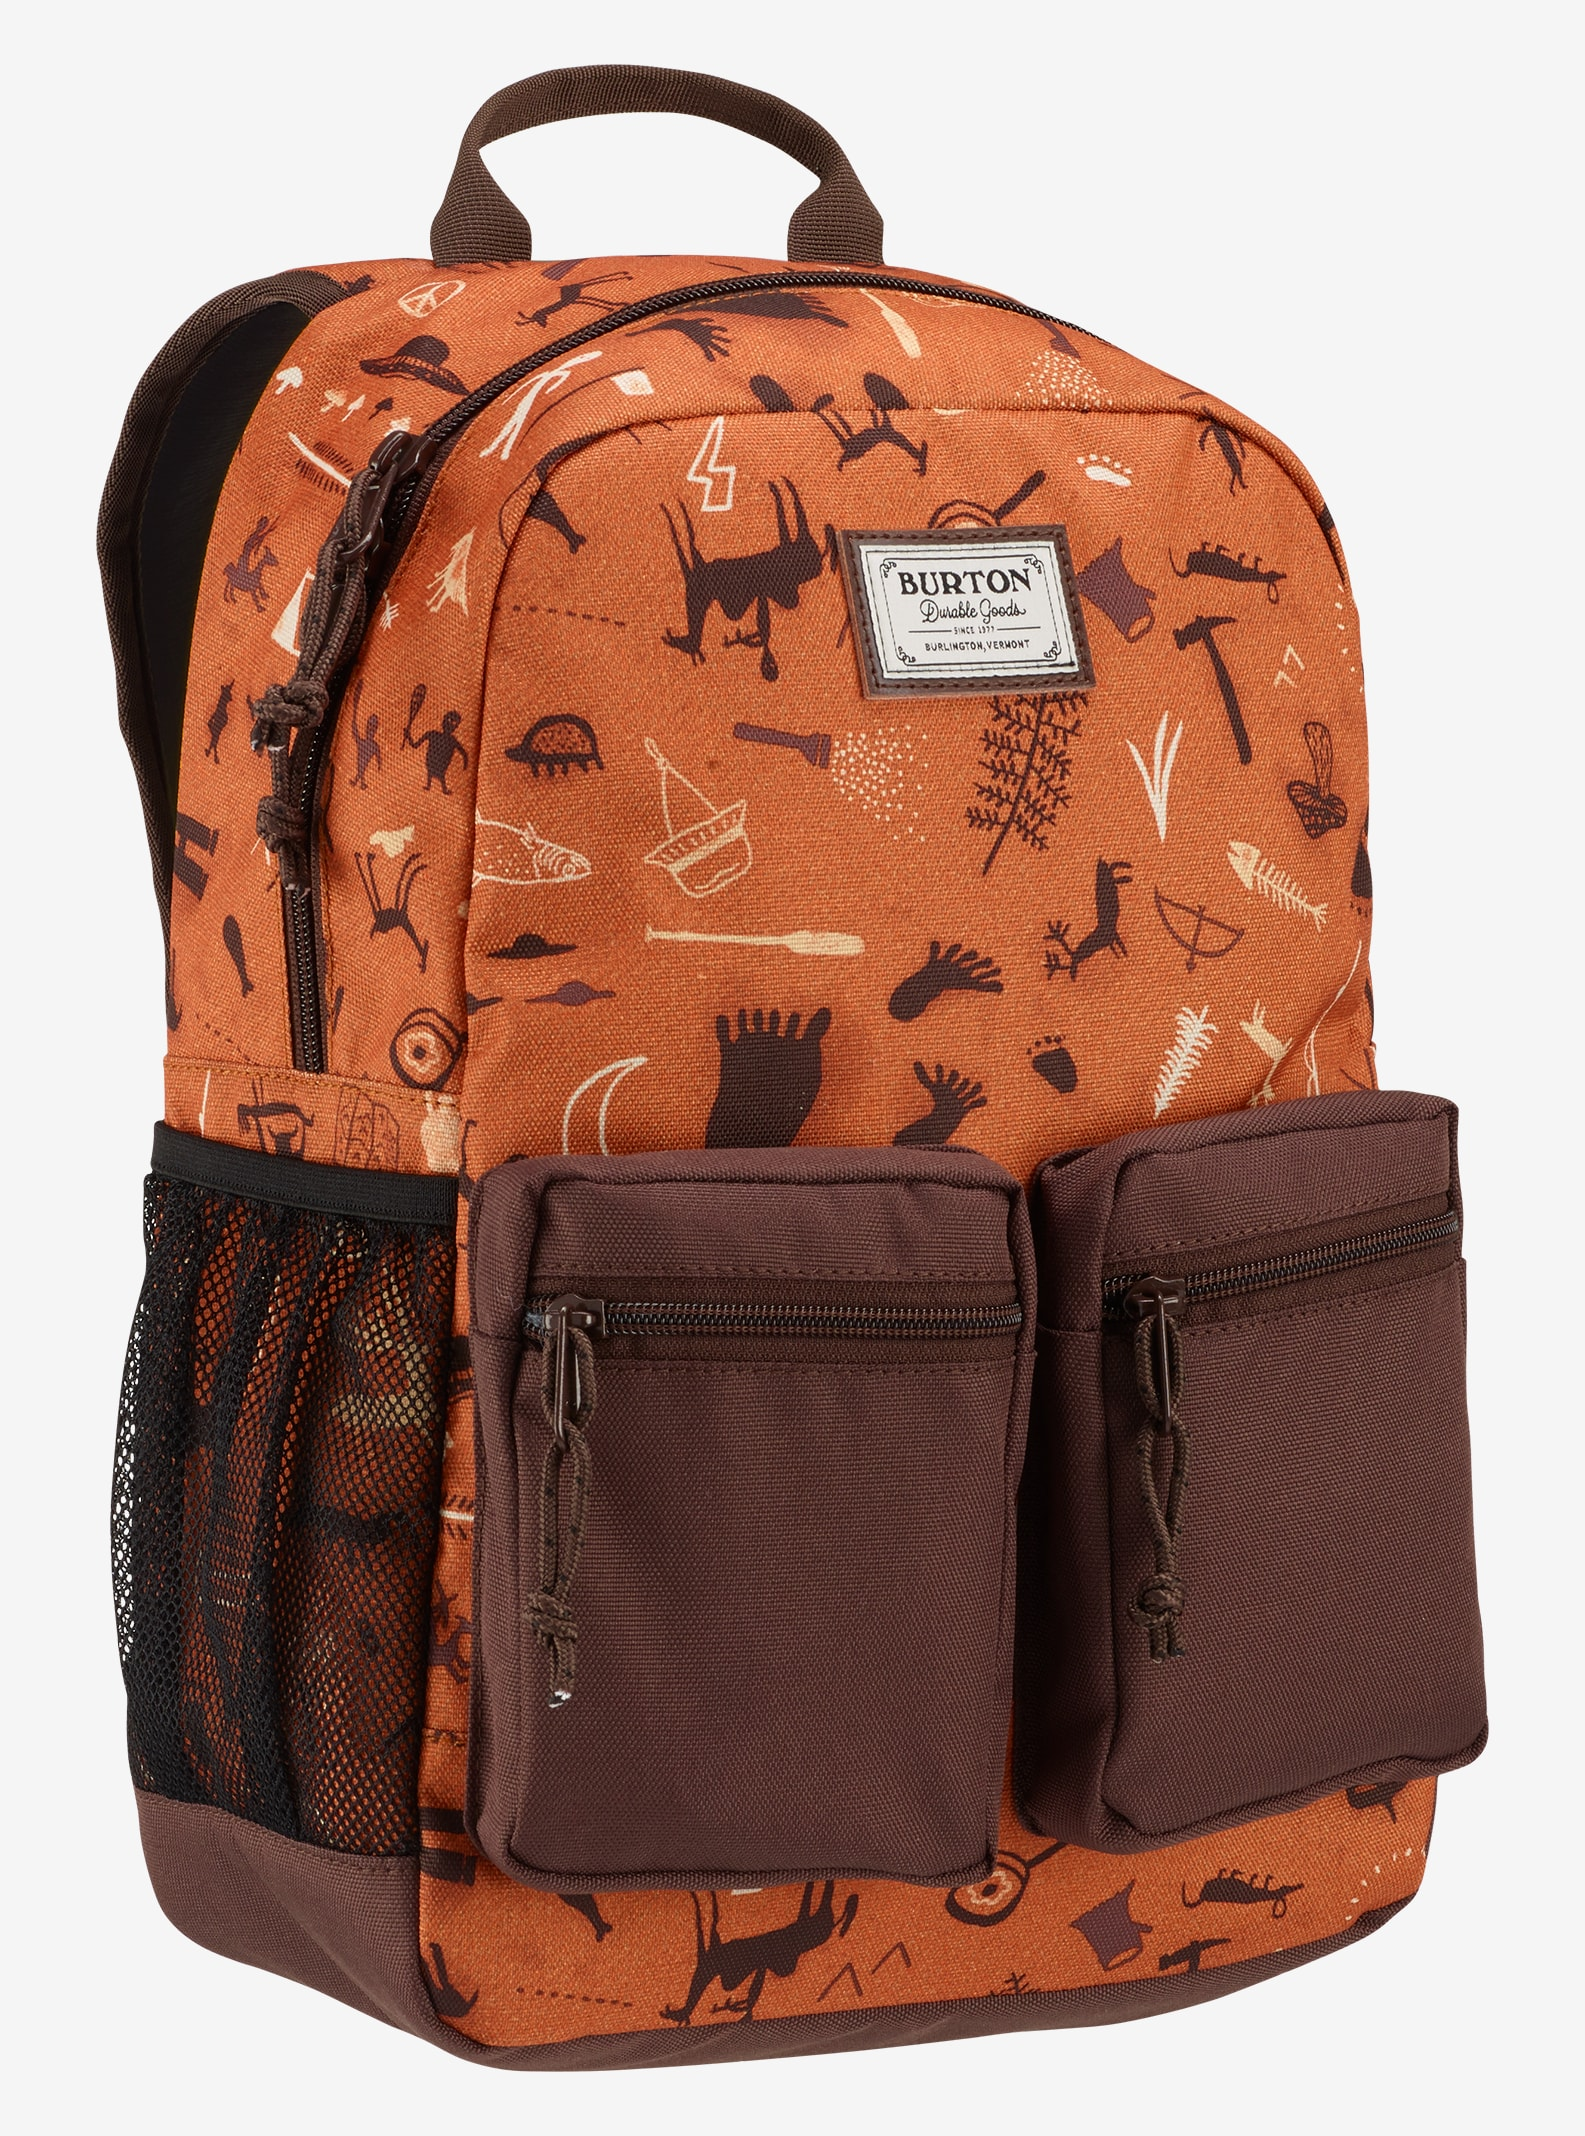 Burton Kids' Gromlet Backpack shown in Caveman Print